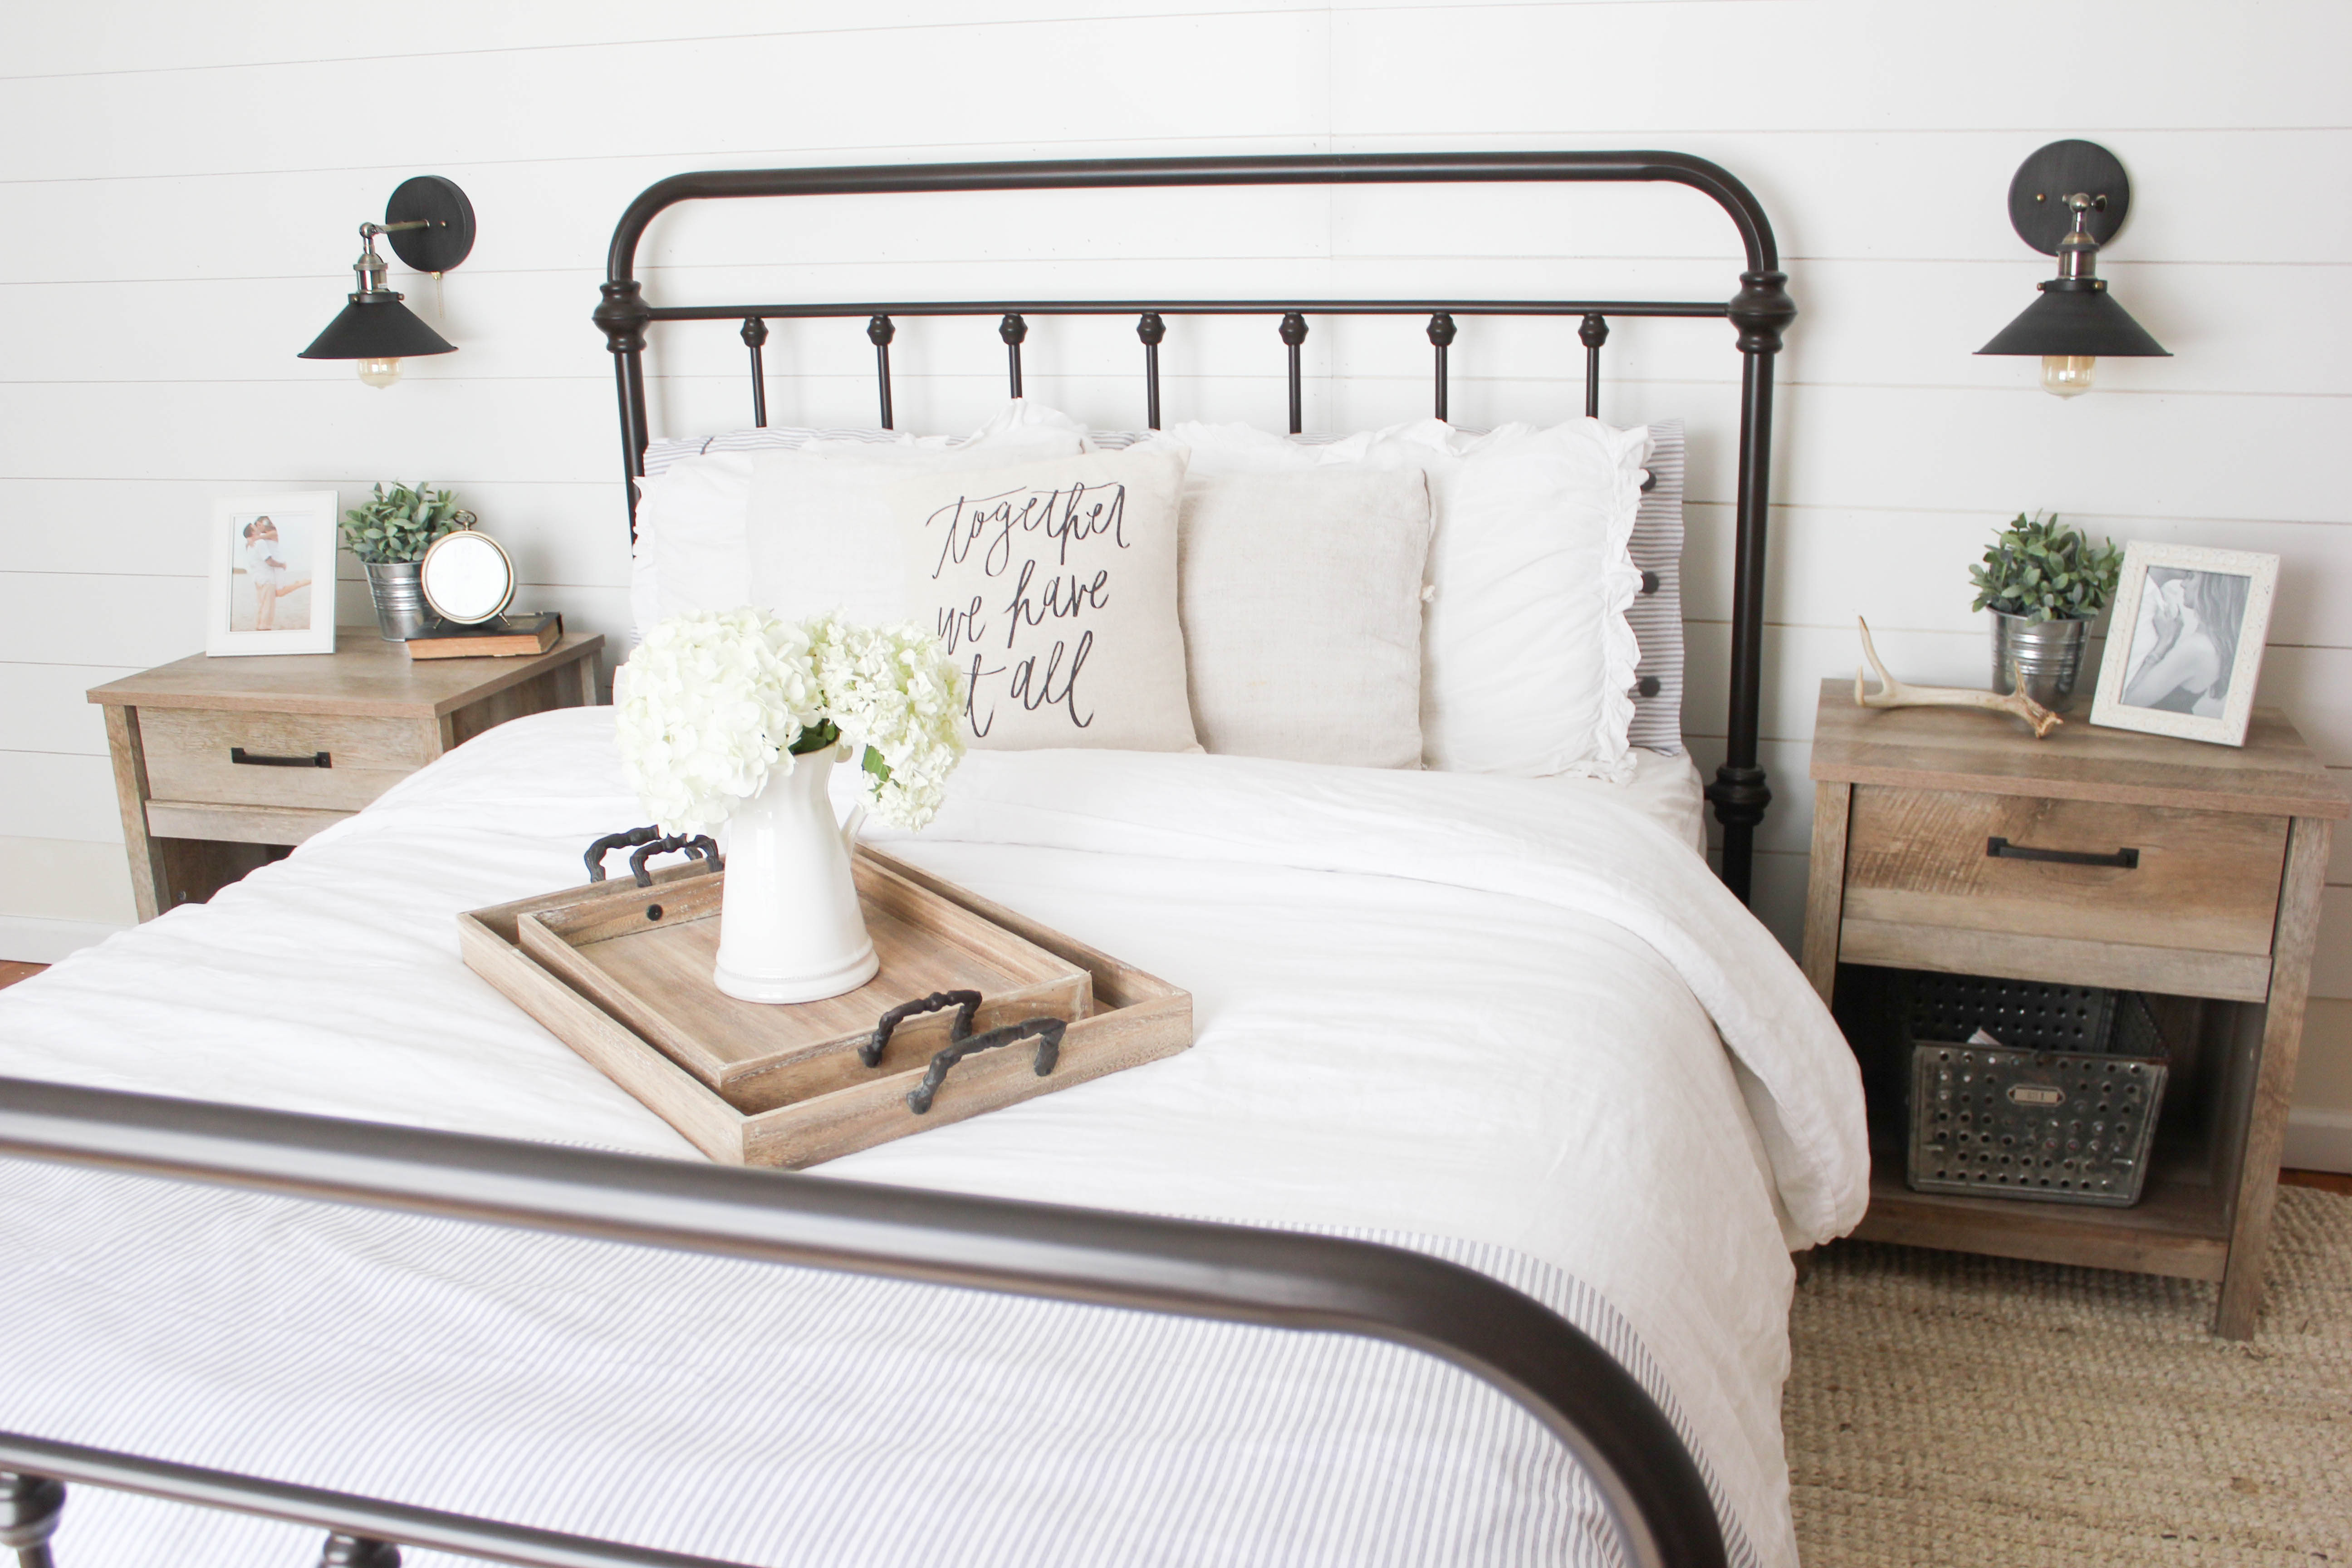 Home // More Best Farmhouse Finds On Amazon